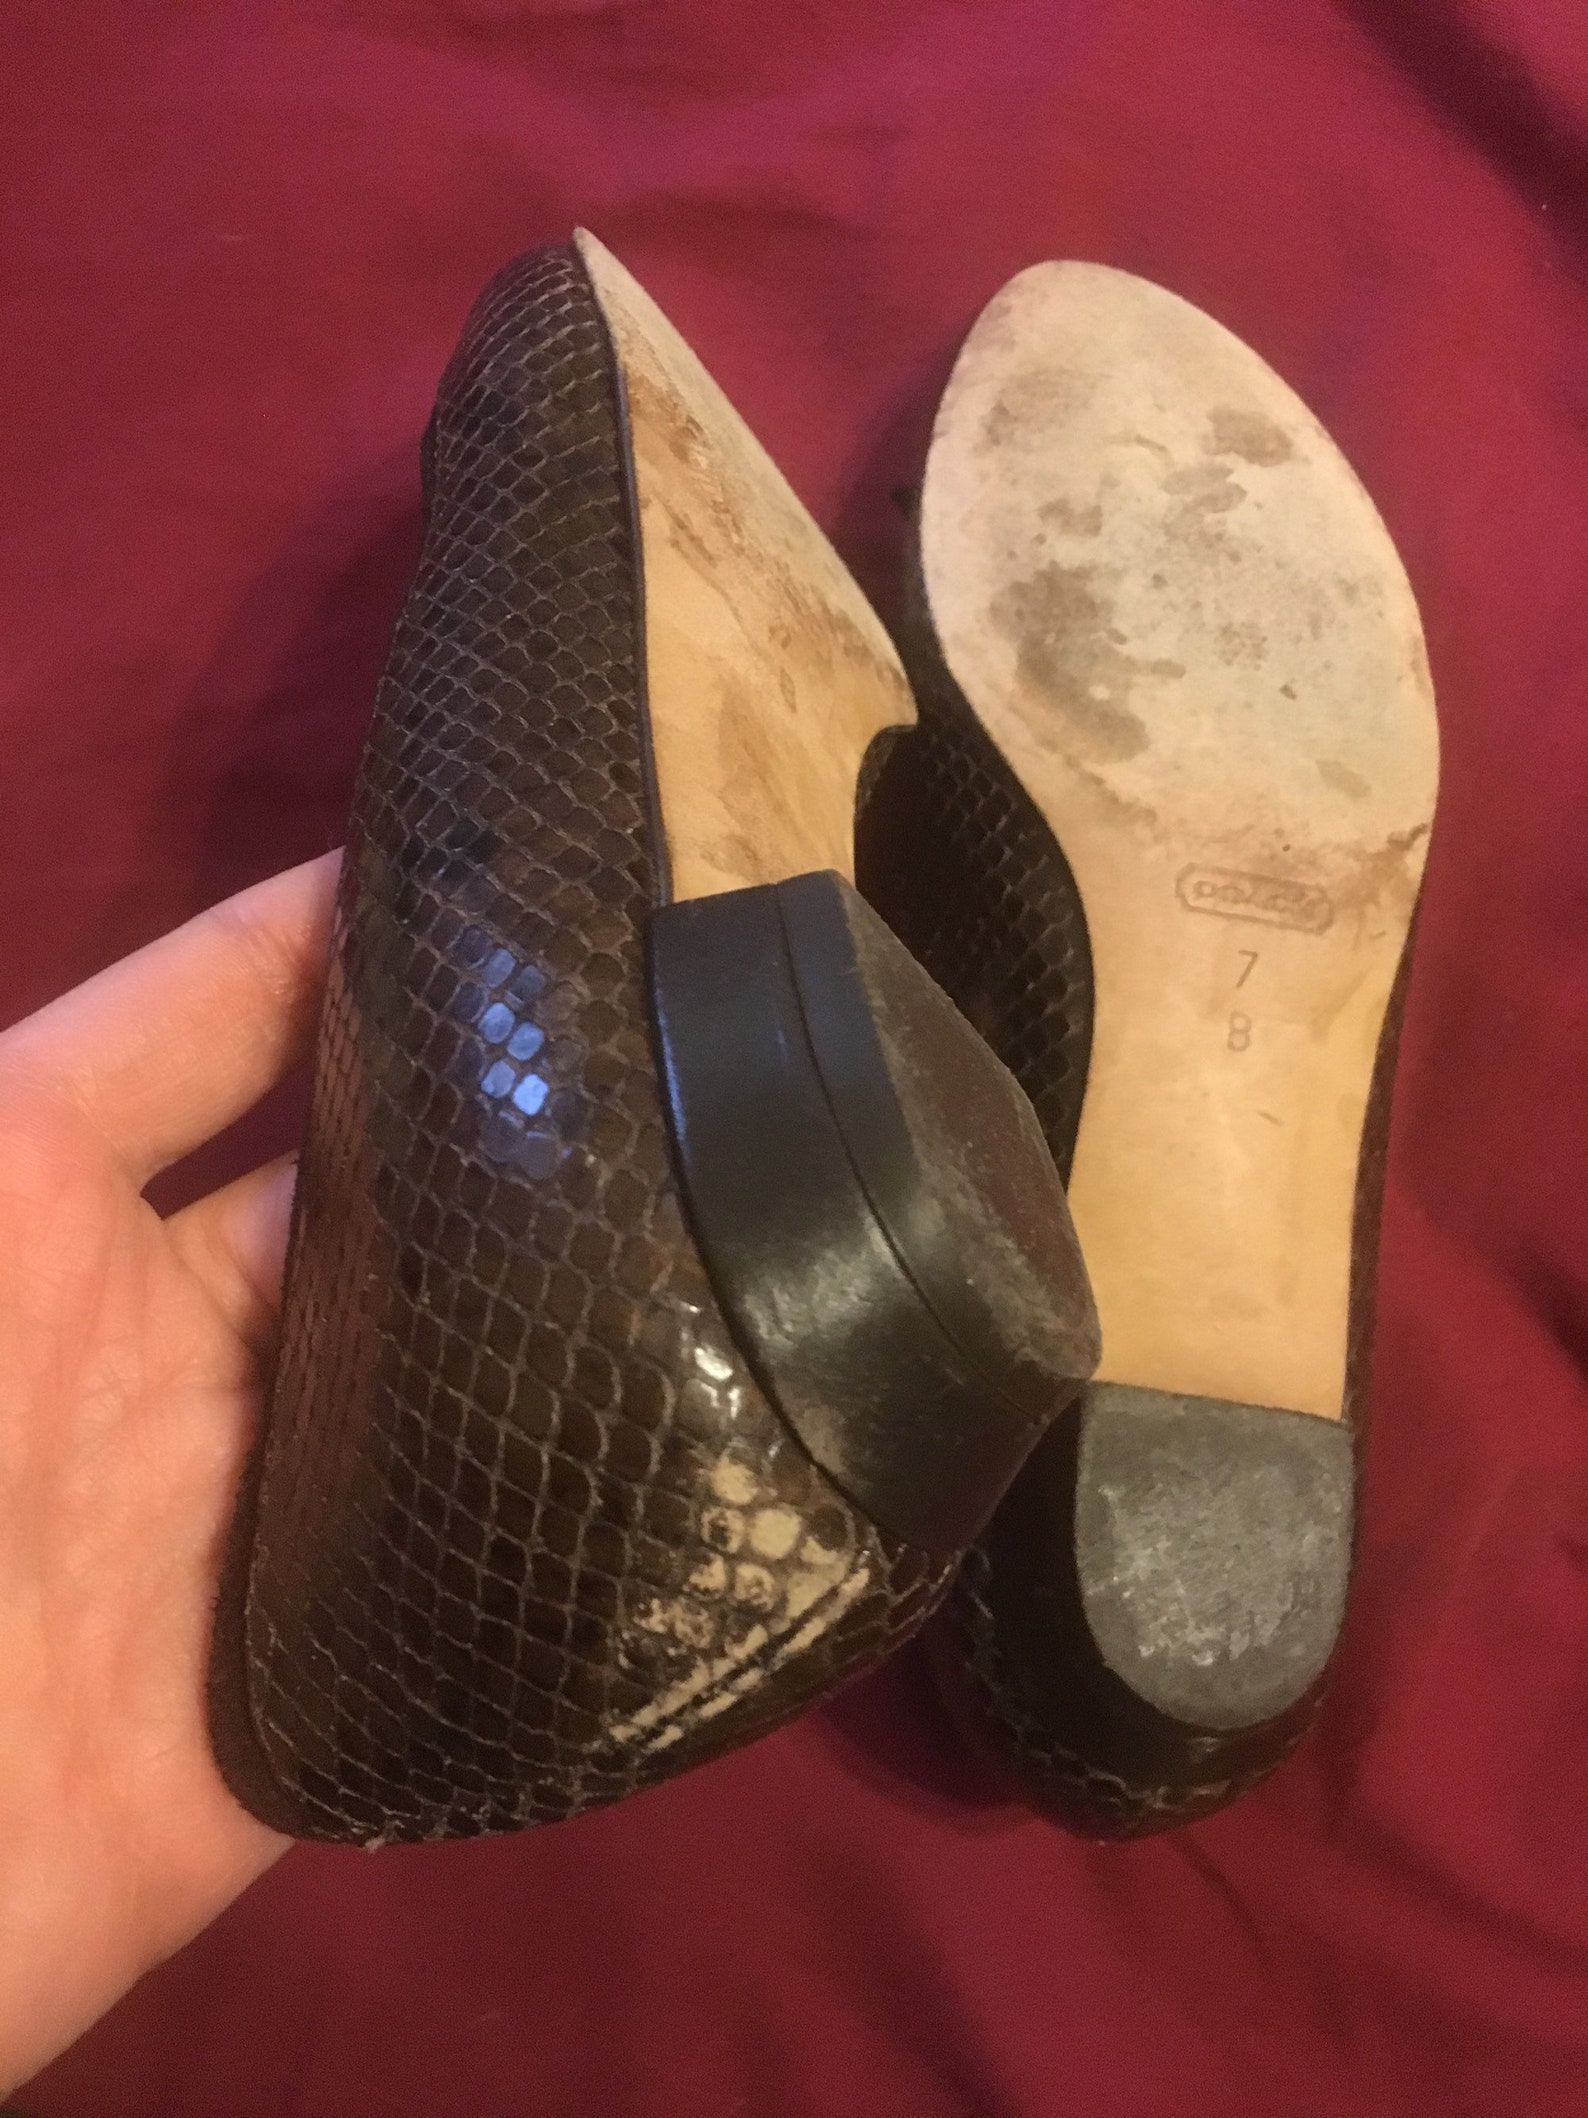 vintage coach brown leather snake skin suede bow ballet flats, womens size 7b, sz 7 made in italy. breakfast at tiffany's